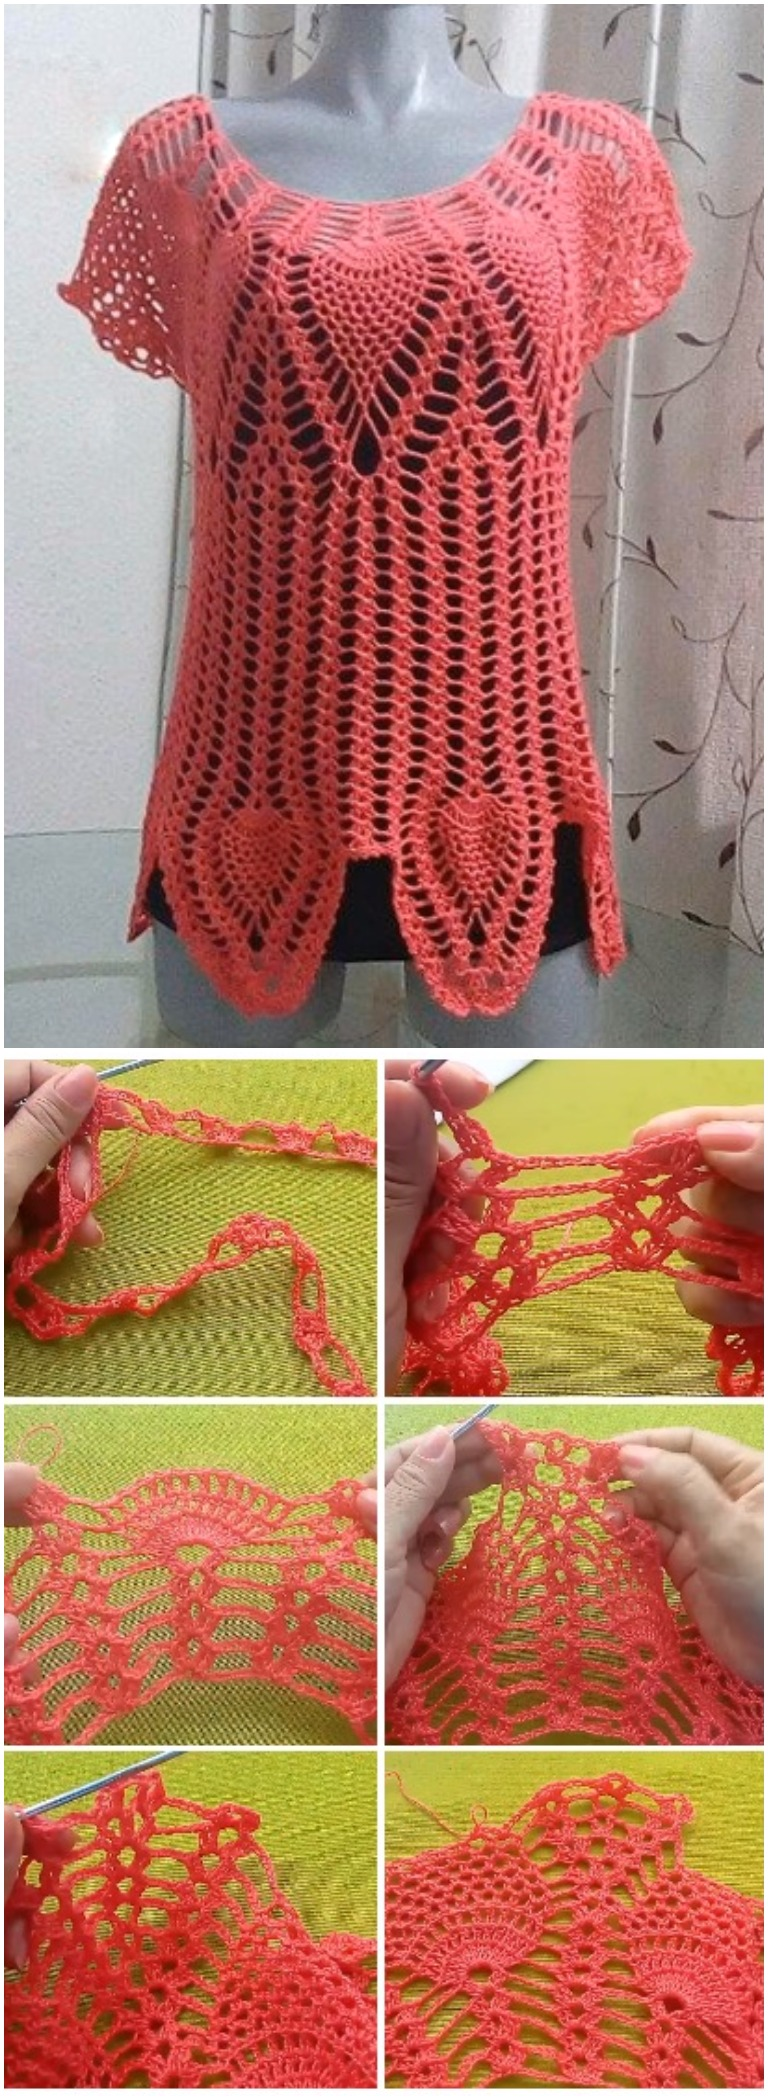 Crochet Blouse With Pineapple Borders